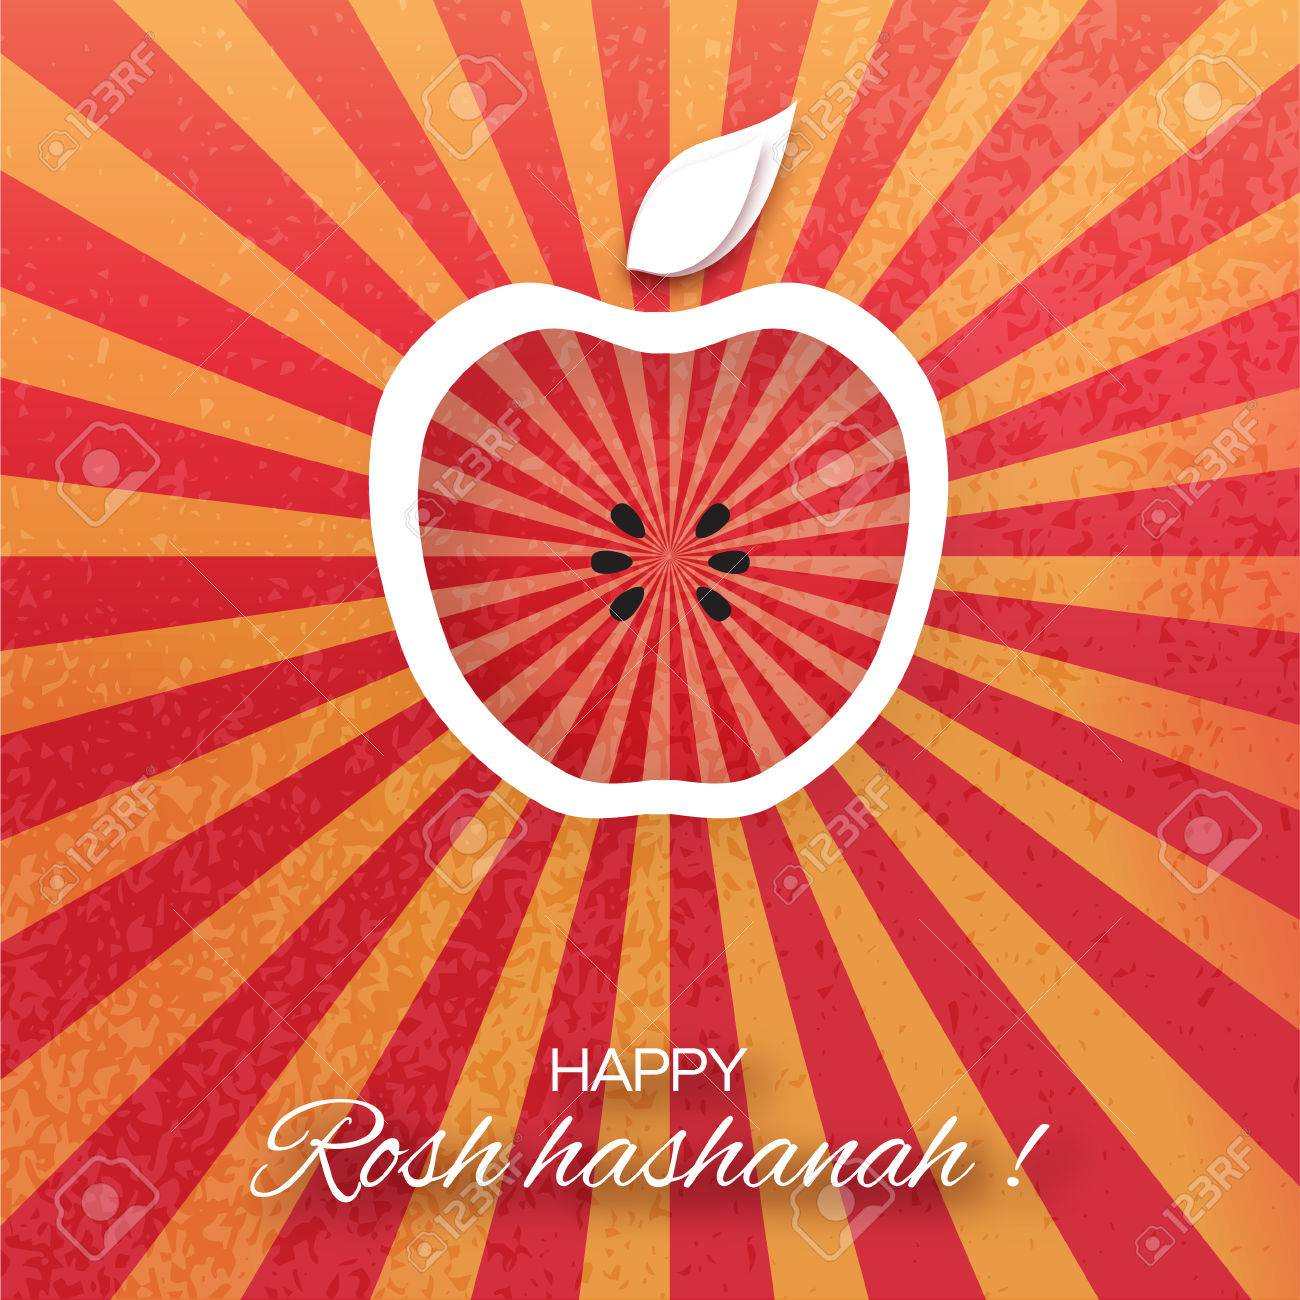 Rosh hashanah holiday origami greeting card jewish new year rosh hashanah holiday origami greeting card jewish new year red background with apple kristyandbryce Choice Image